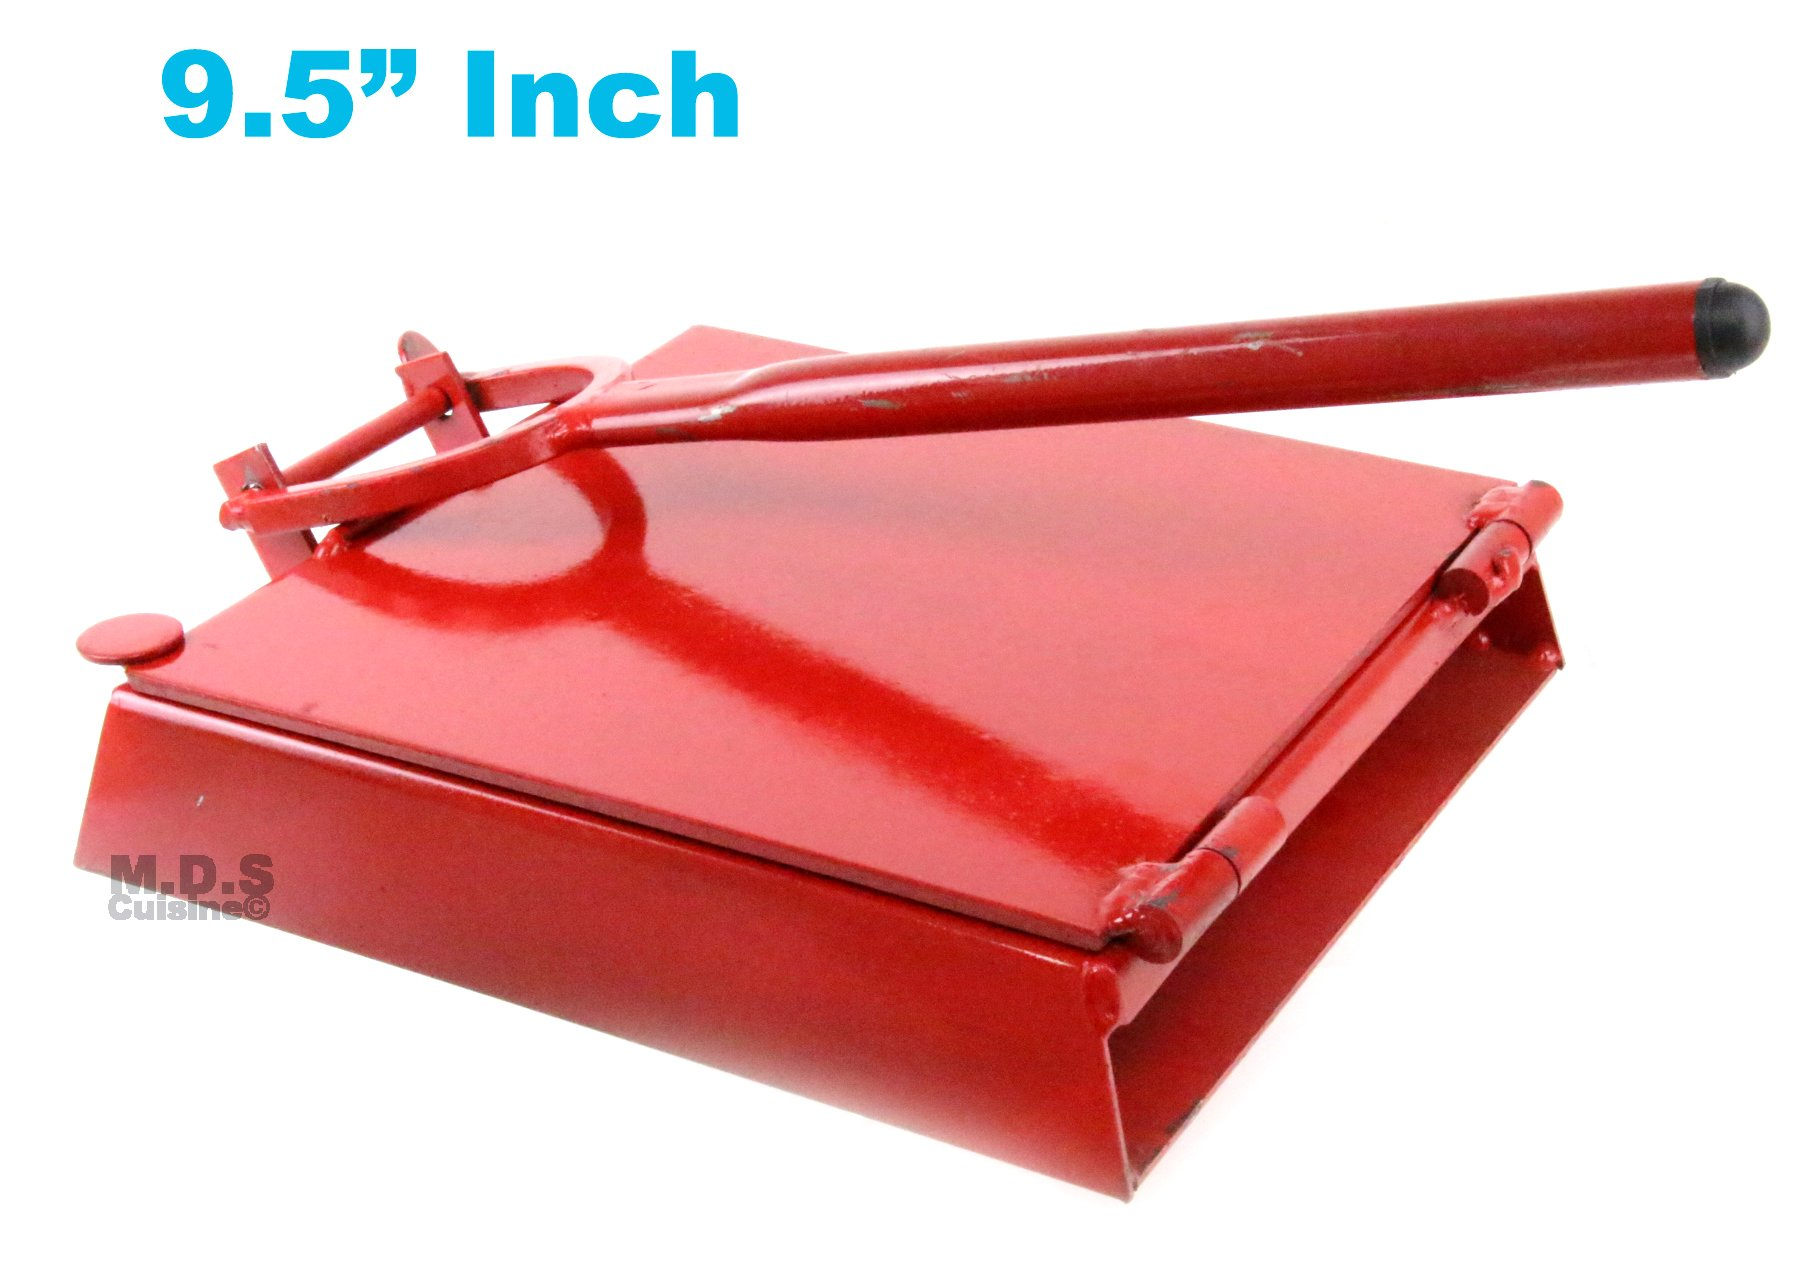 Tortilla Press 9.5'' Red Heavy Duty Iron Restaurant Commercial Authentic Mexican Tortillas by Ematik